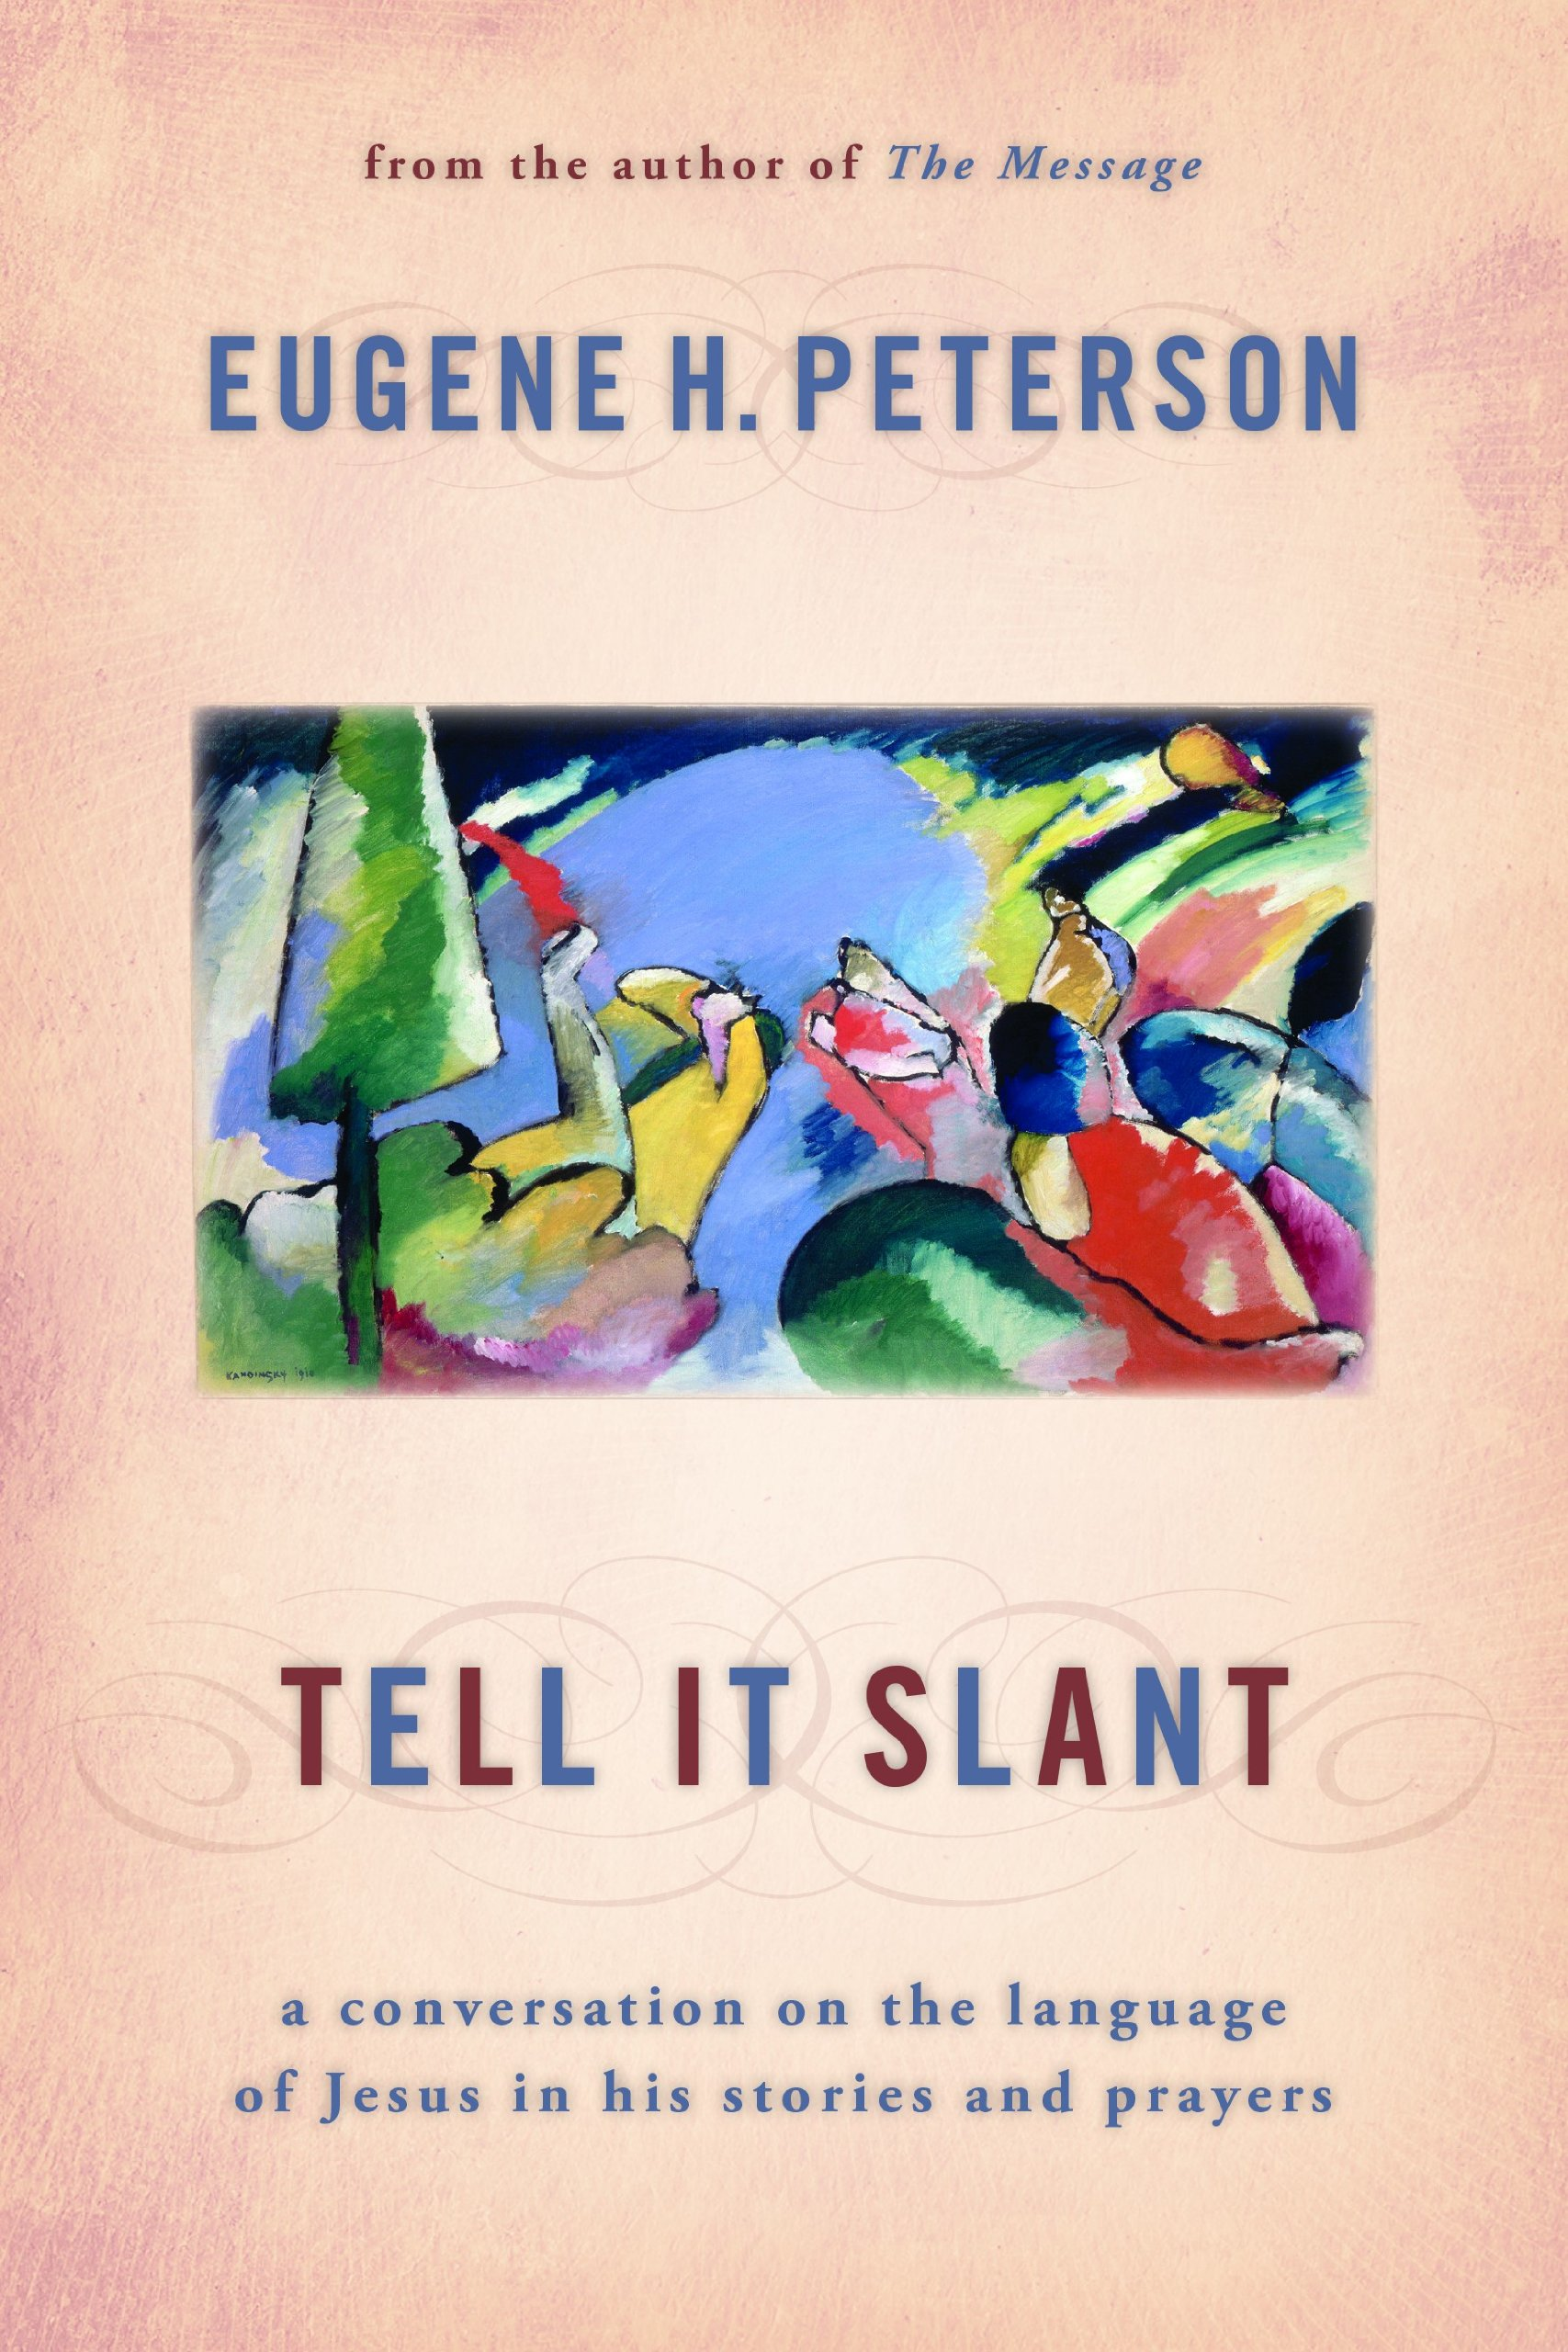 Tell It Slant: A Conversation on the Language of Jesus in His Stories and Prayers by Wm B Eerdmans Publishing Co.